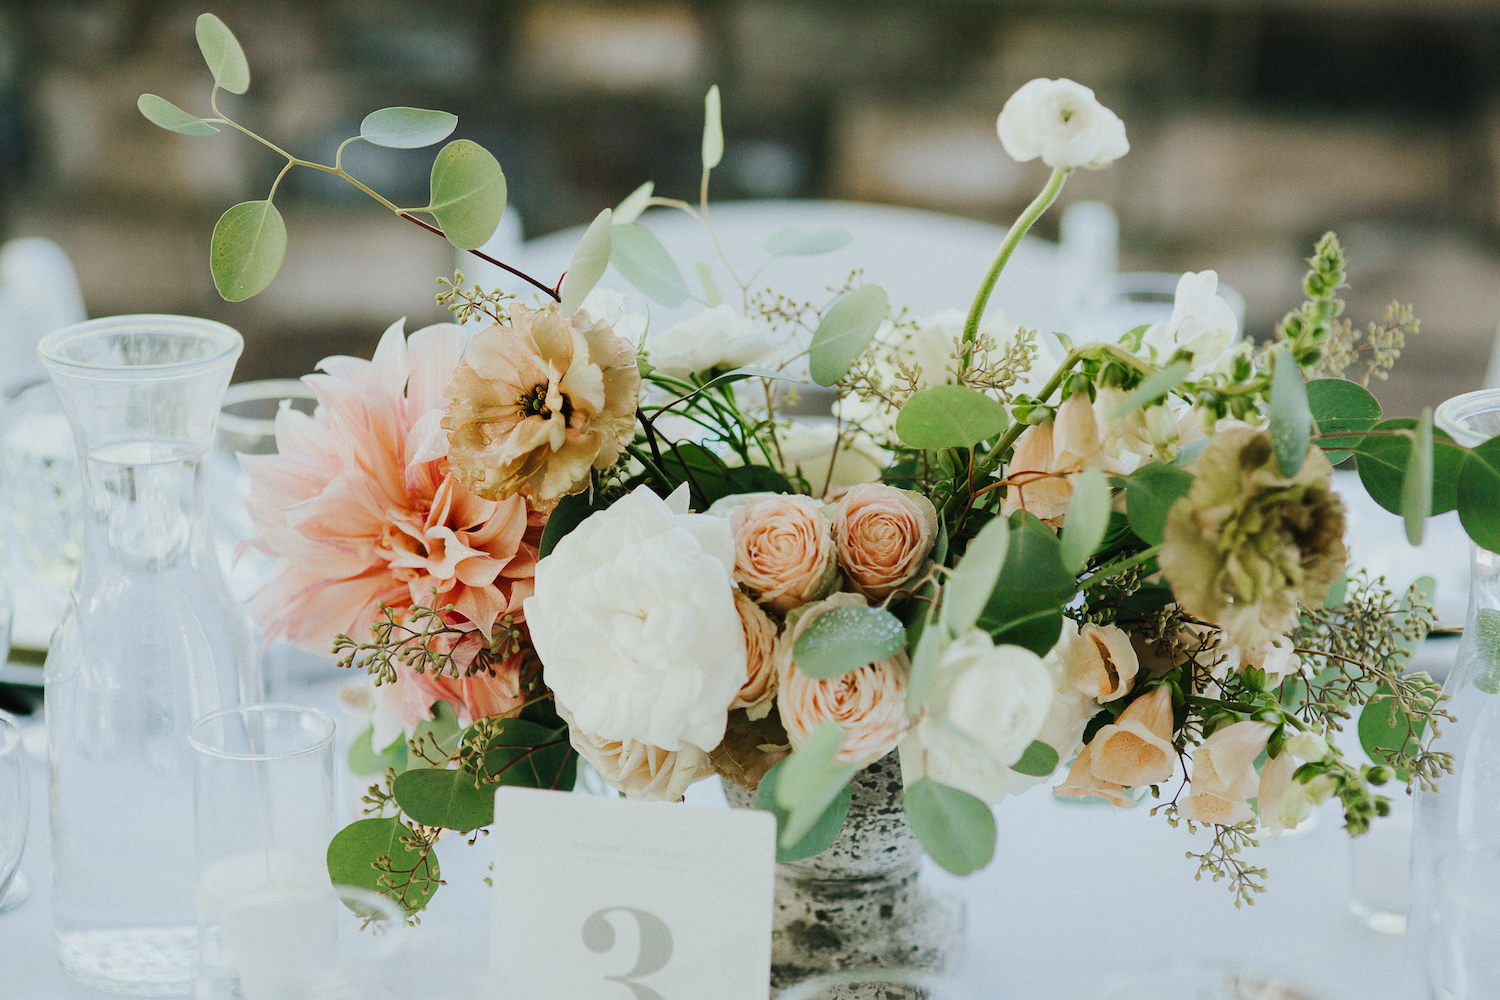 Wild Bloom Floral - Rachel Birkhofer Photography - Jessica and Phil - Real Wedding - Seattle 34.jpeg